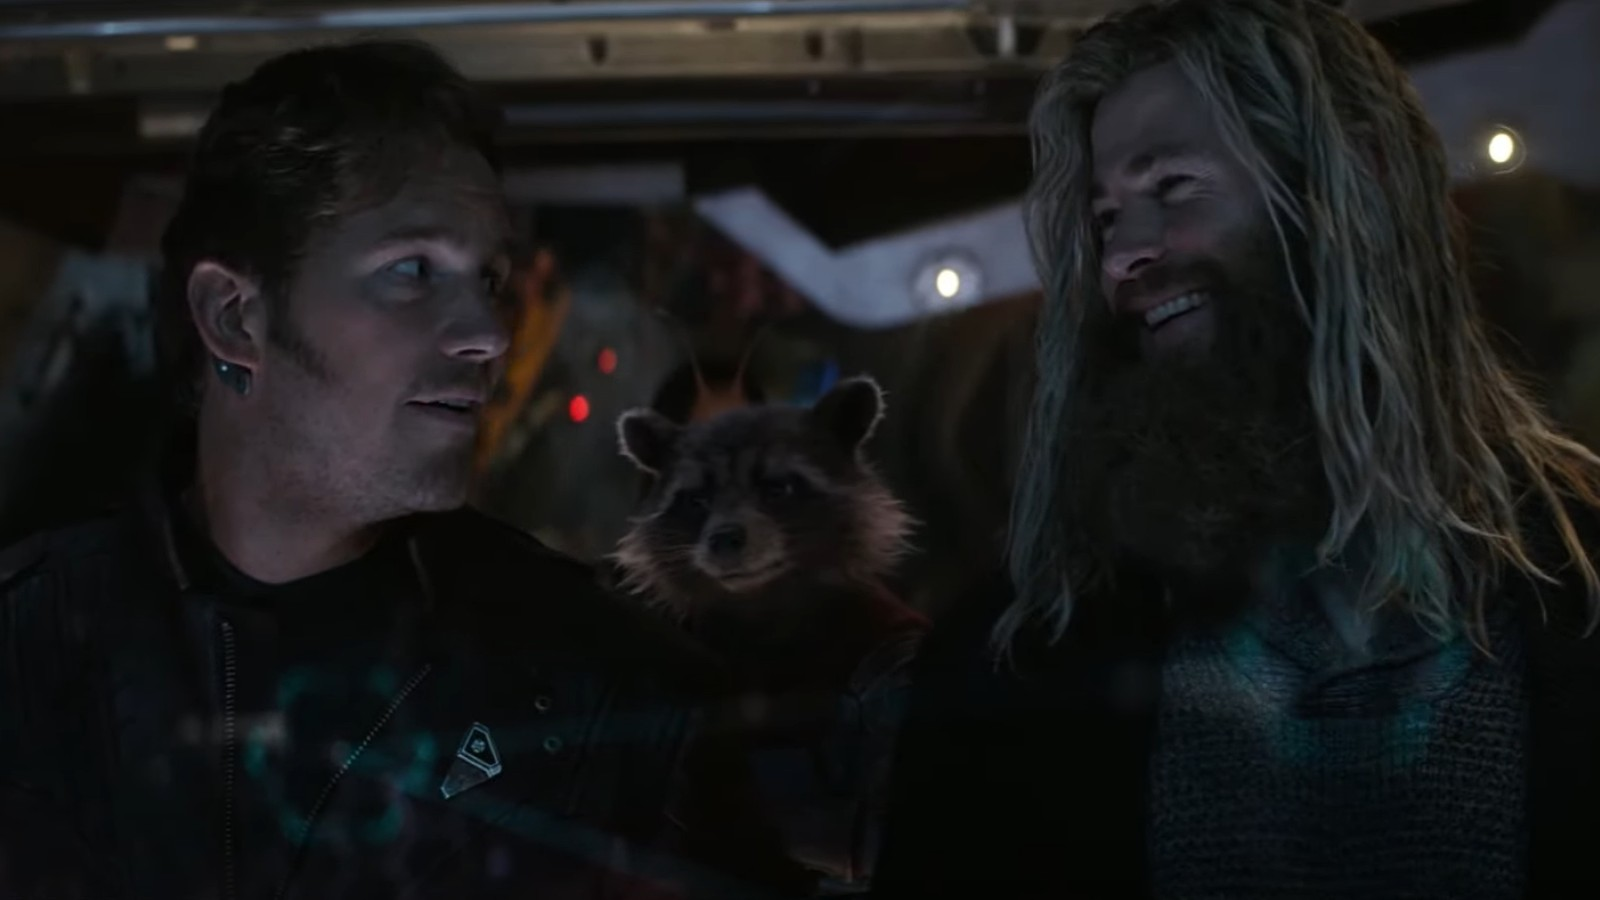 Thor and Star Lord in Marvel's Avengers: Endgame